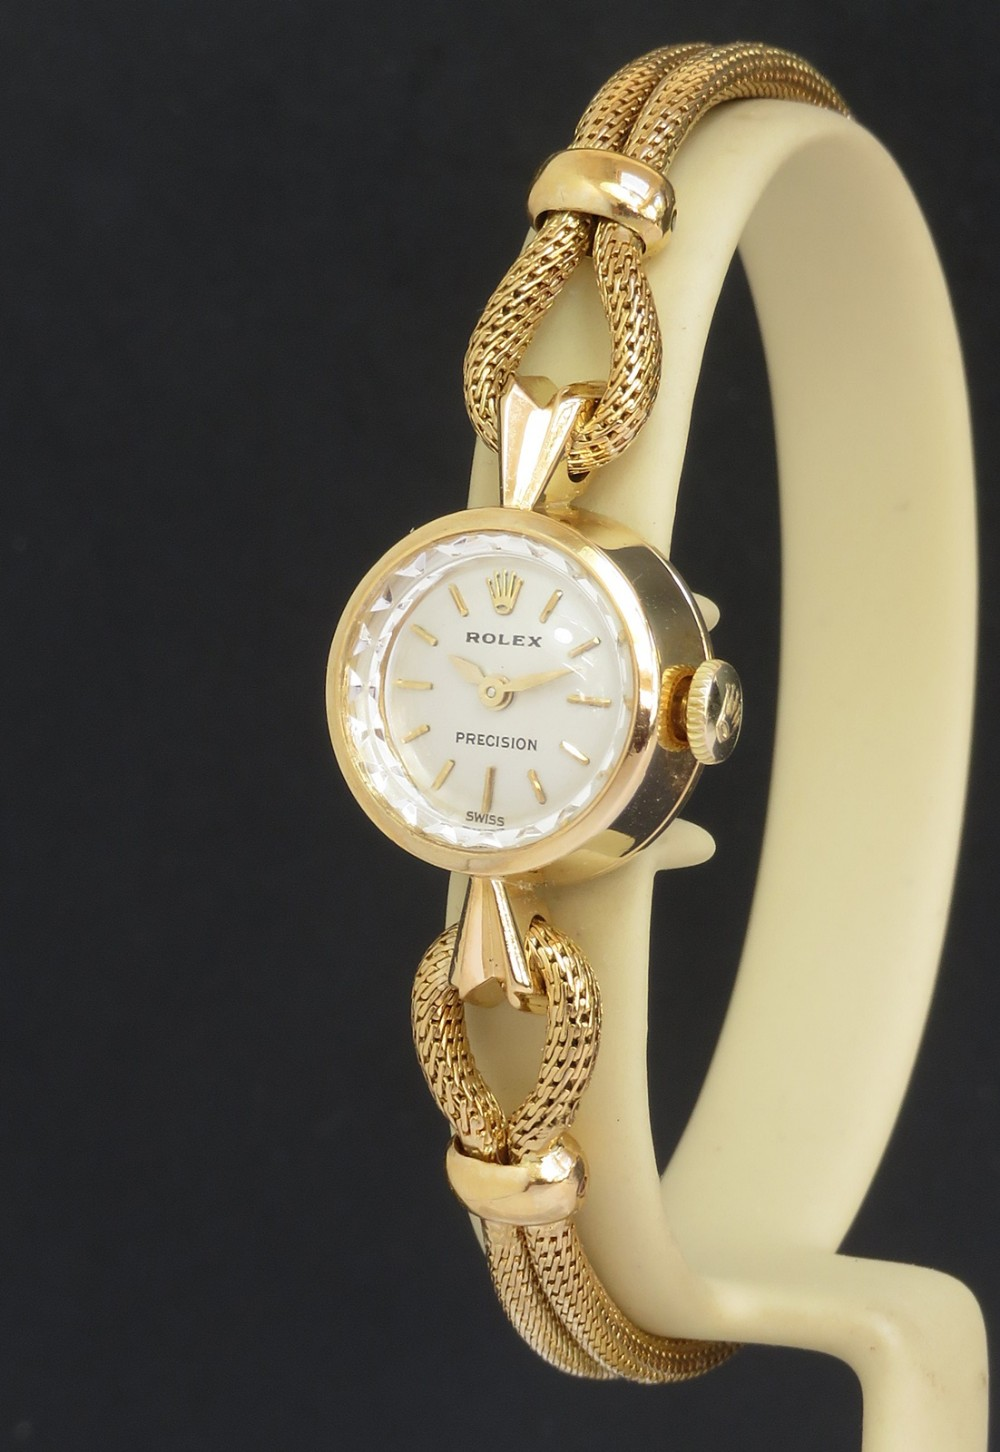 near mint solid 18ct gold rolex precision cocktail watch c1961